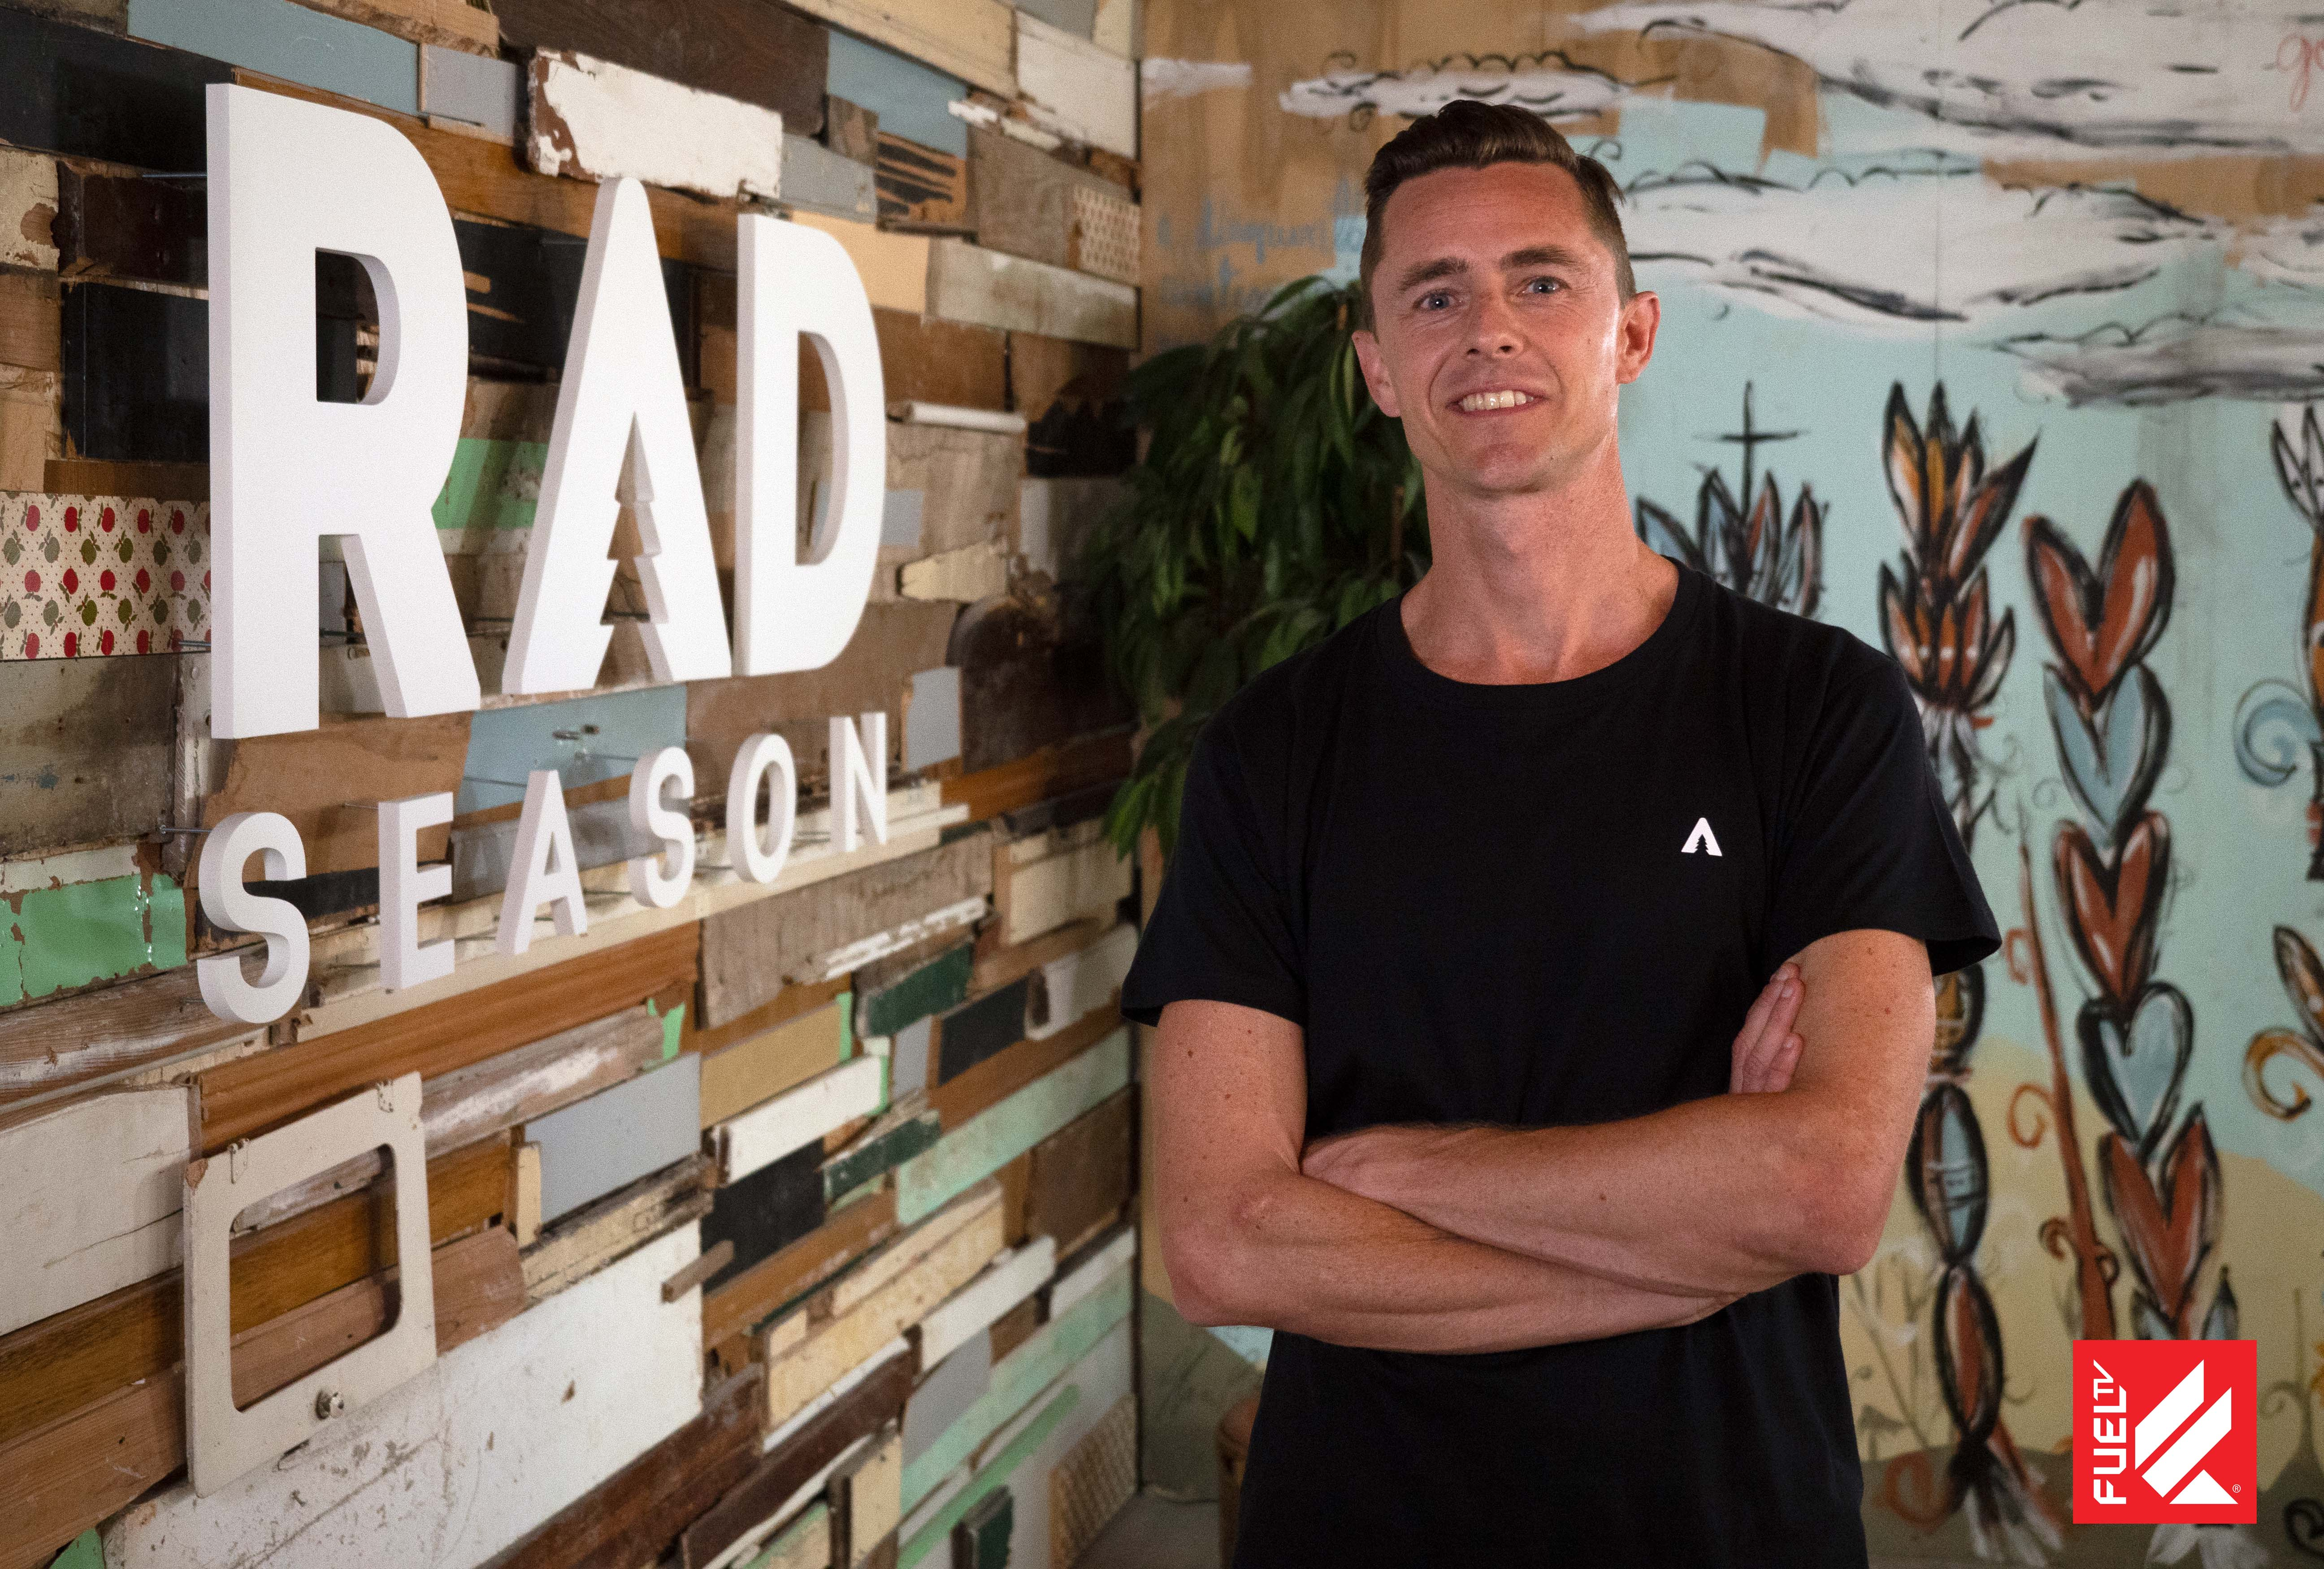 RAD SEASON With Oli Russell-Cowan Launches on FUEL TV